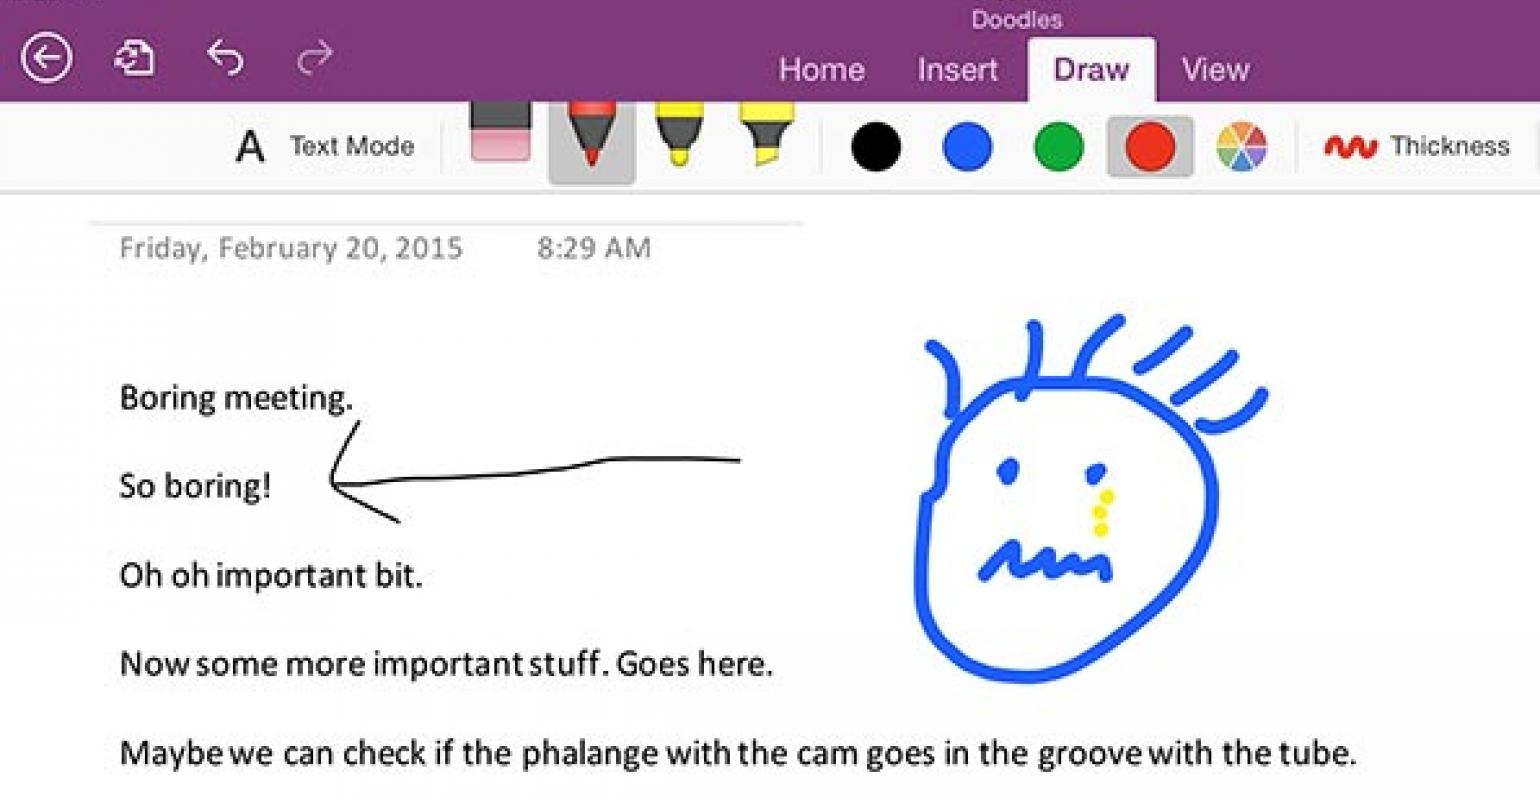 Hands on with OneNote for iPad - New OCR and pen features